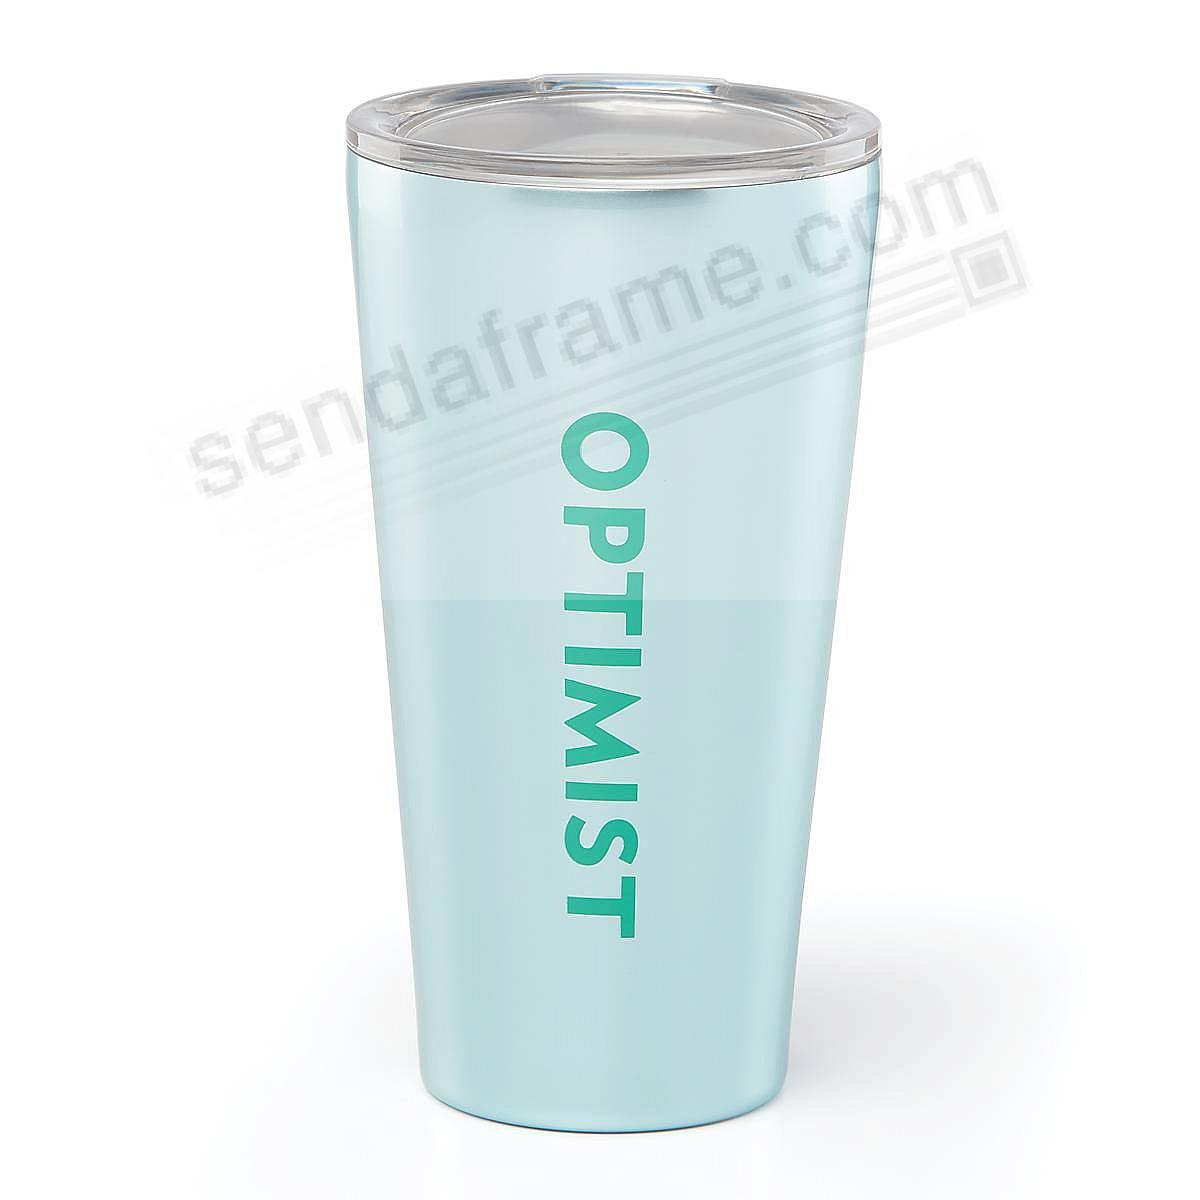 >>OPTIMIST<< Travel Mug by kate spade new york®